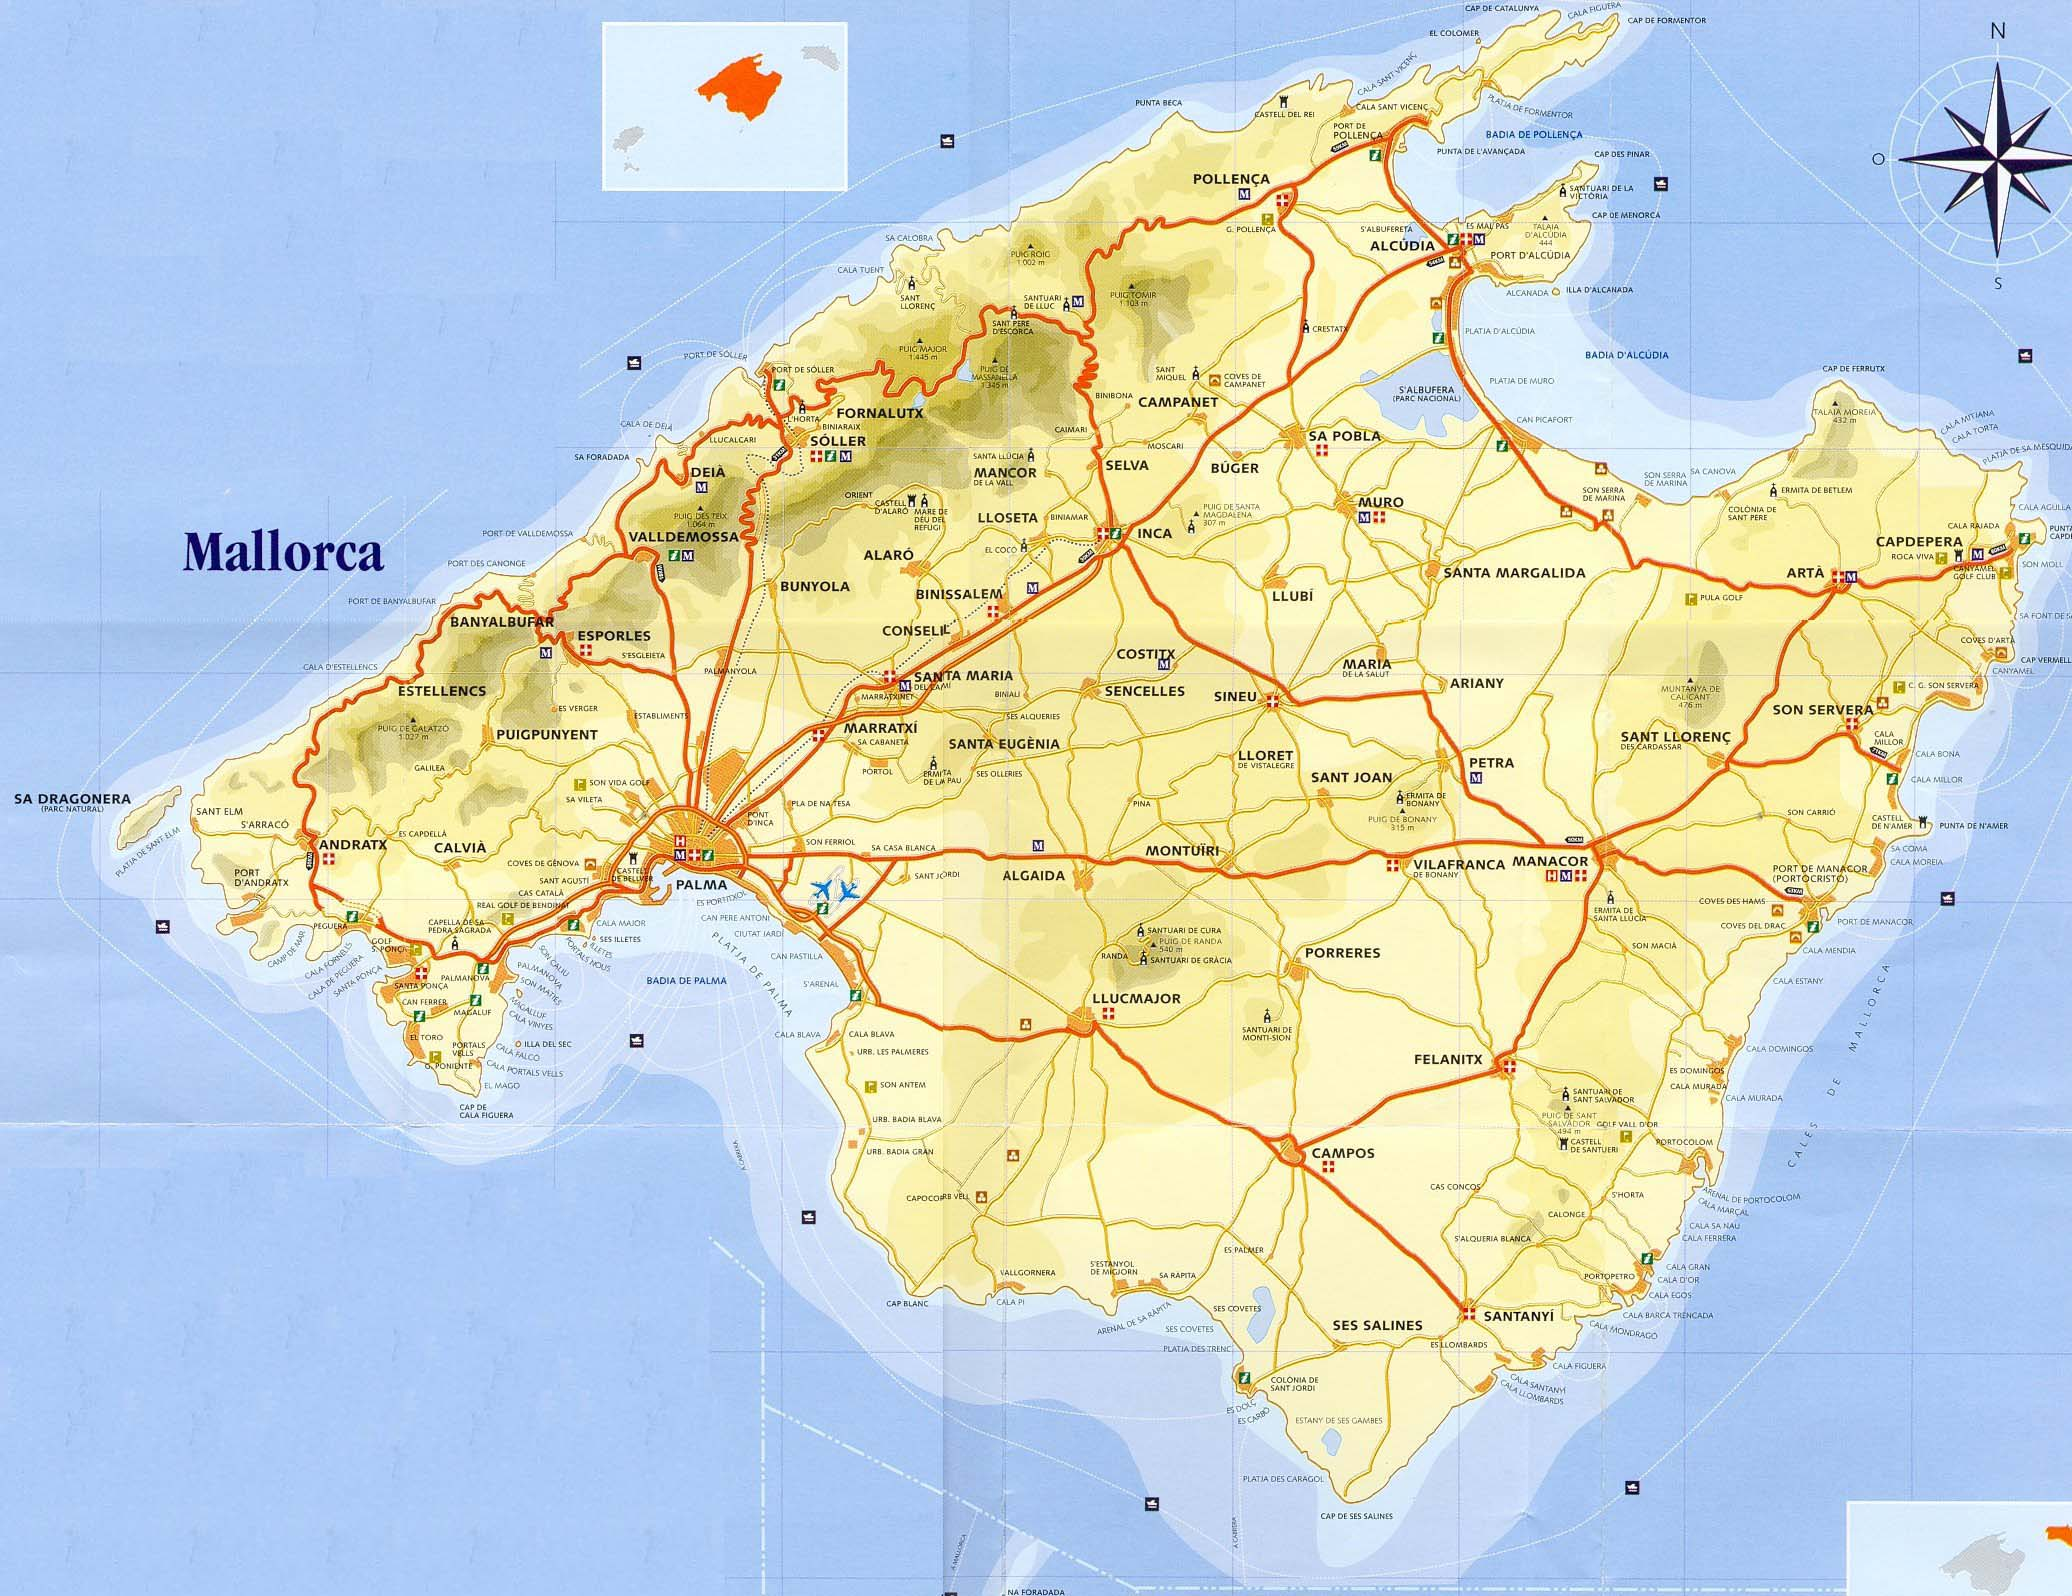 Map, Mallorca Island, Balearic Islands, Spain